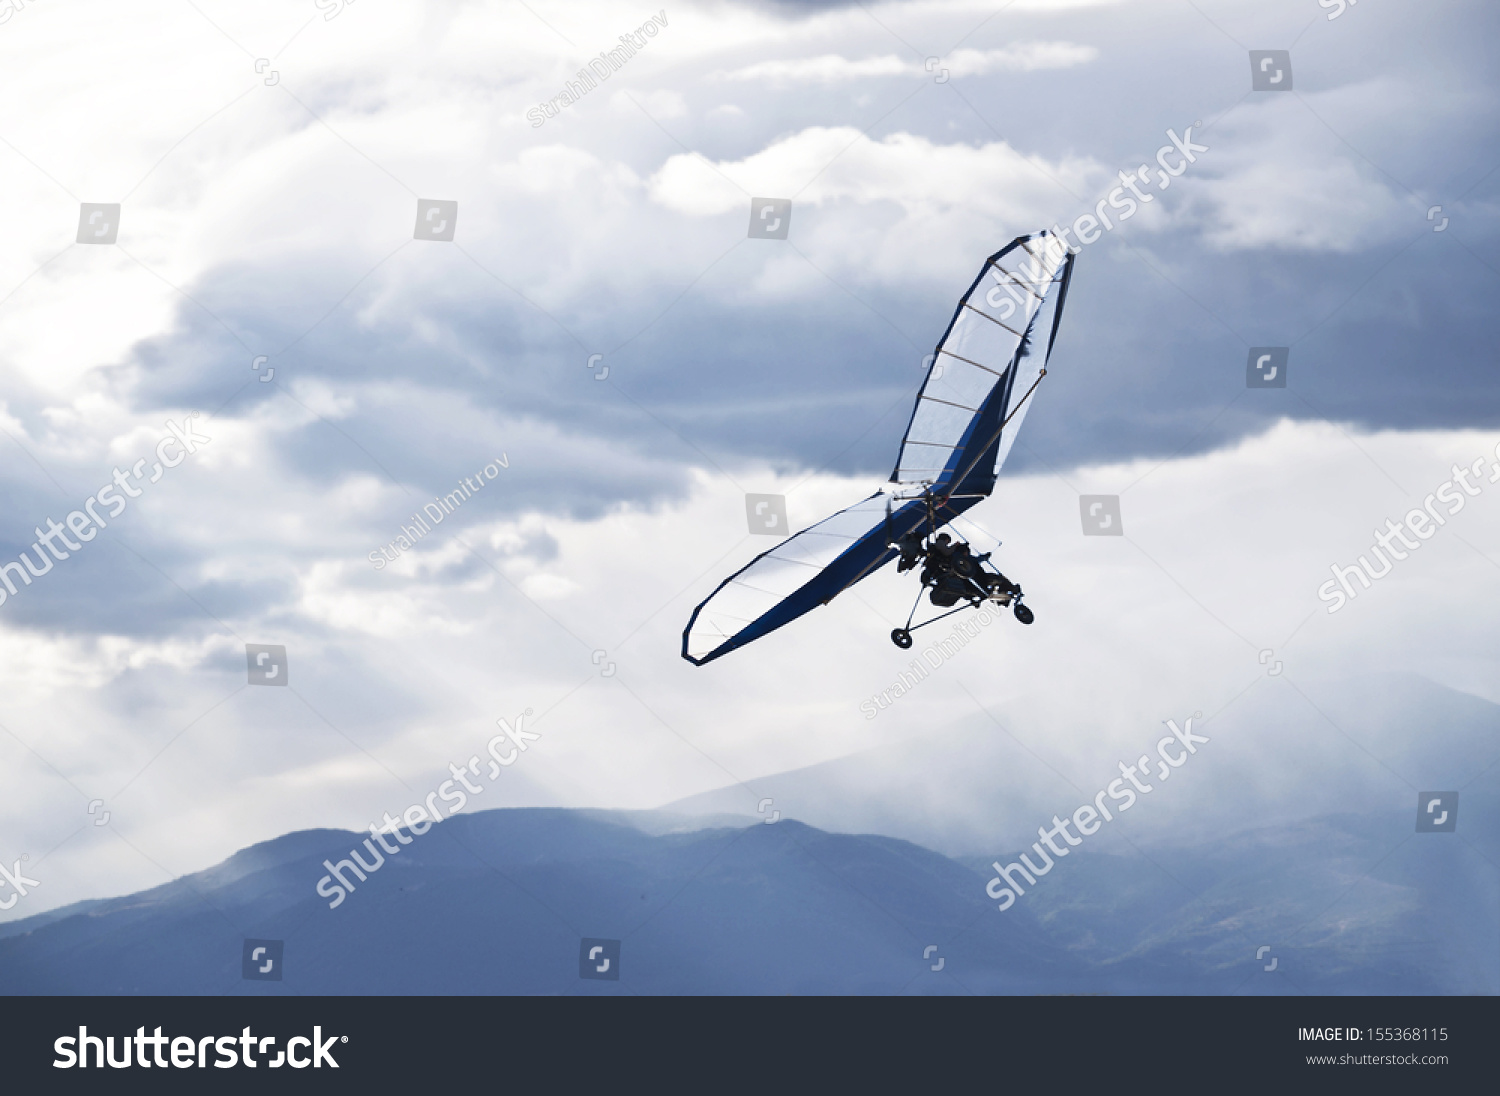 Paragliding As Extreme And Fun Sport Stock Photo 155368115 : Shutterstock